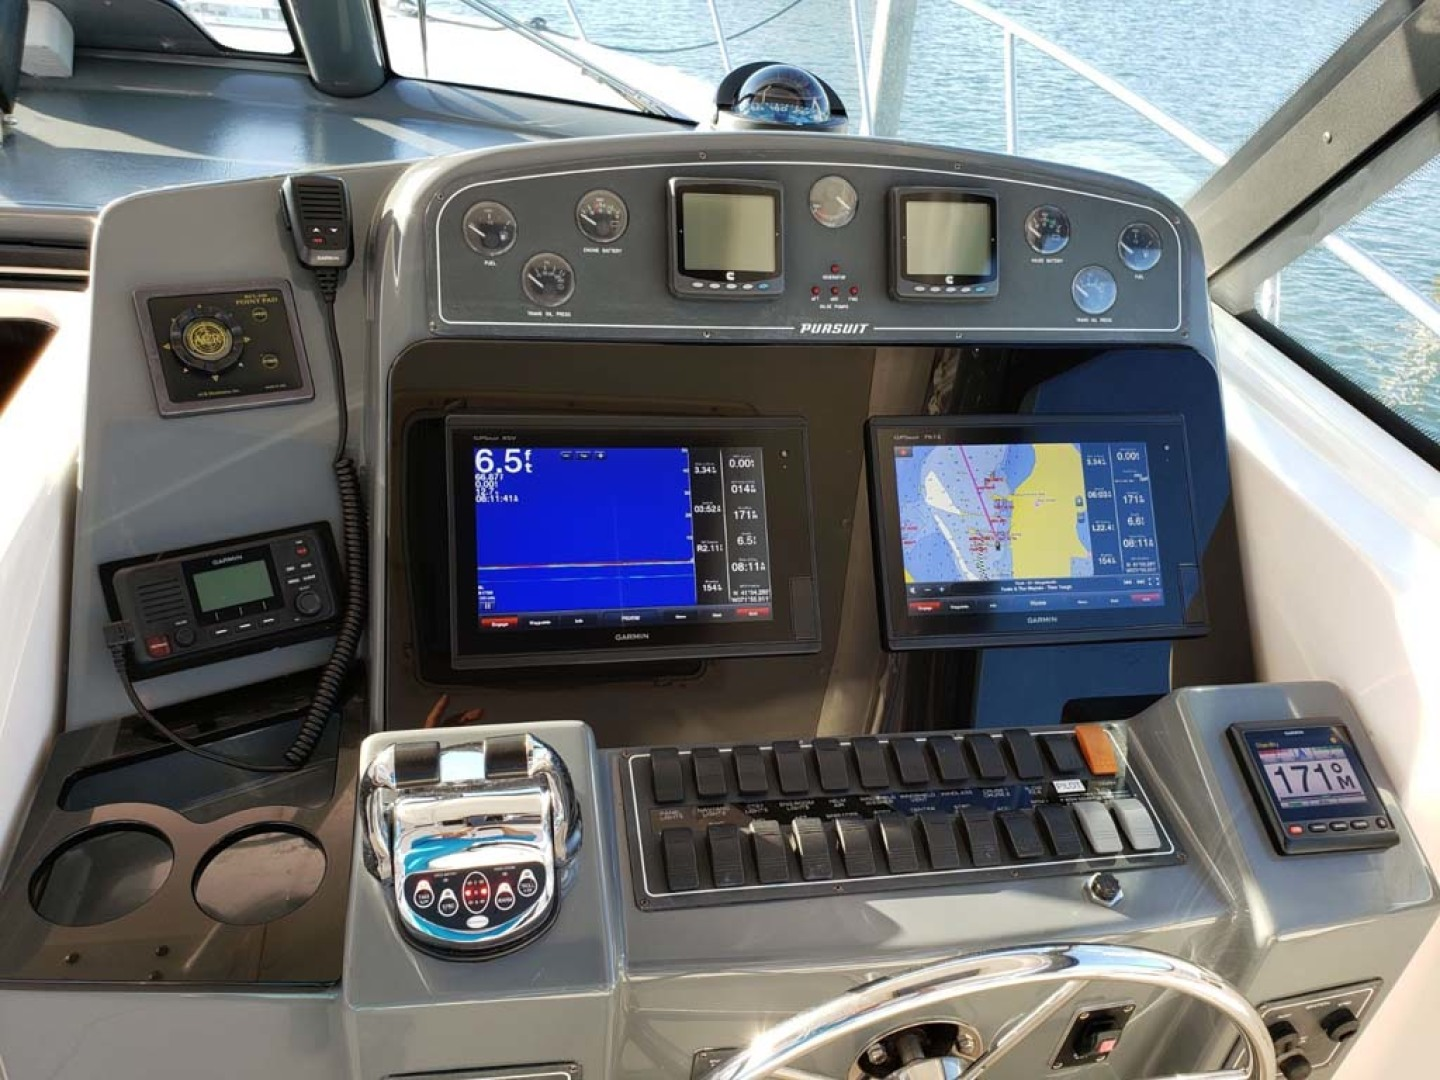 Pursuit-3800 Express 2004-CAN MAN Montauk-New York-United States-Helm-1250947 | Thumbnail